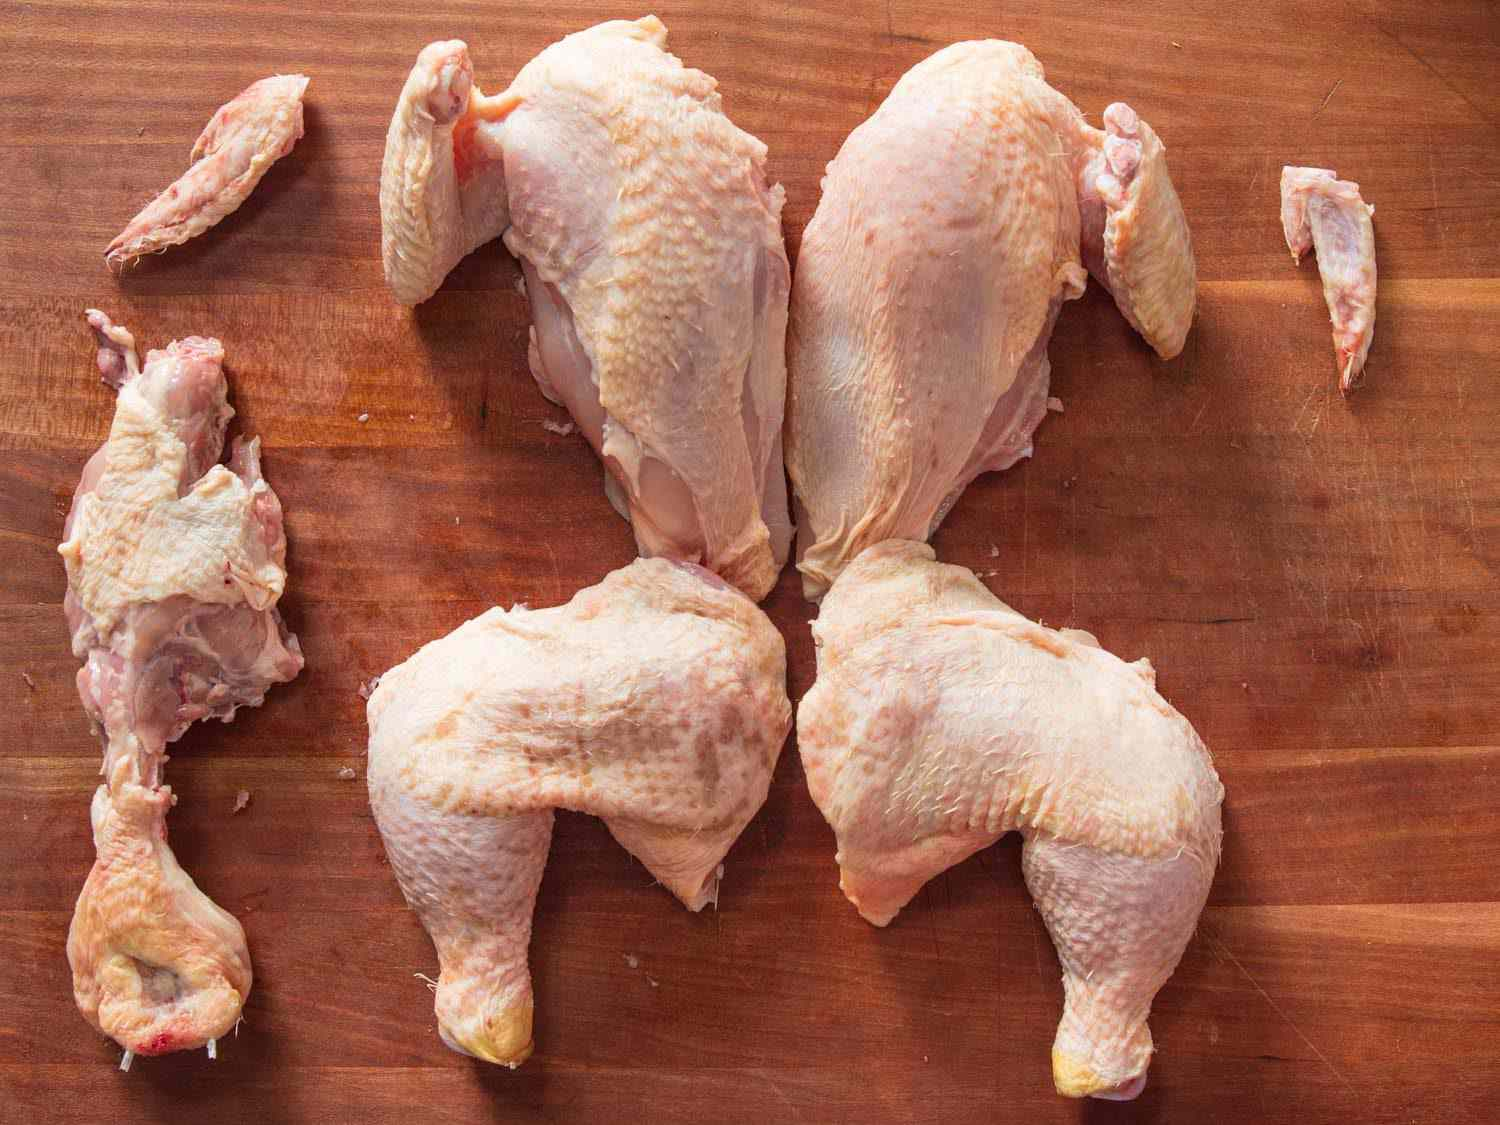 Chicken broken down into four pieces with wing tips and back for stock.